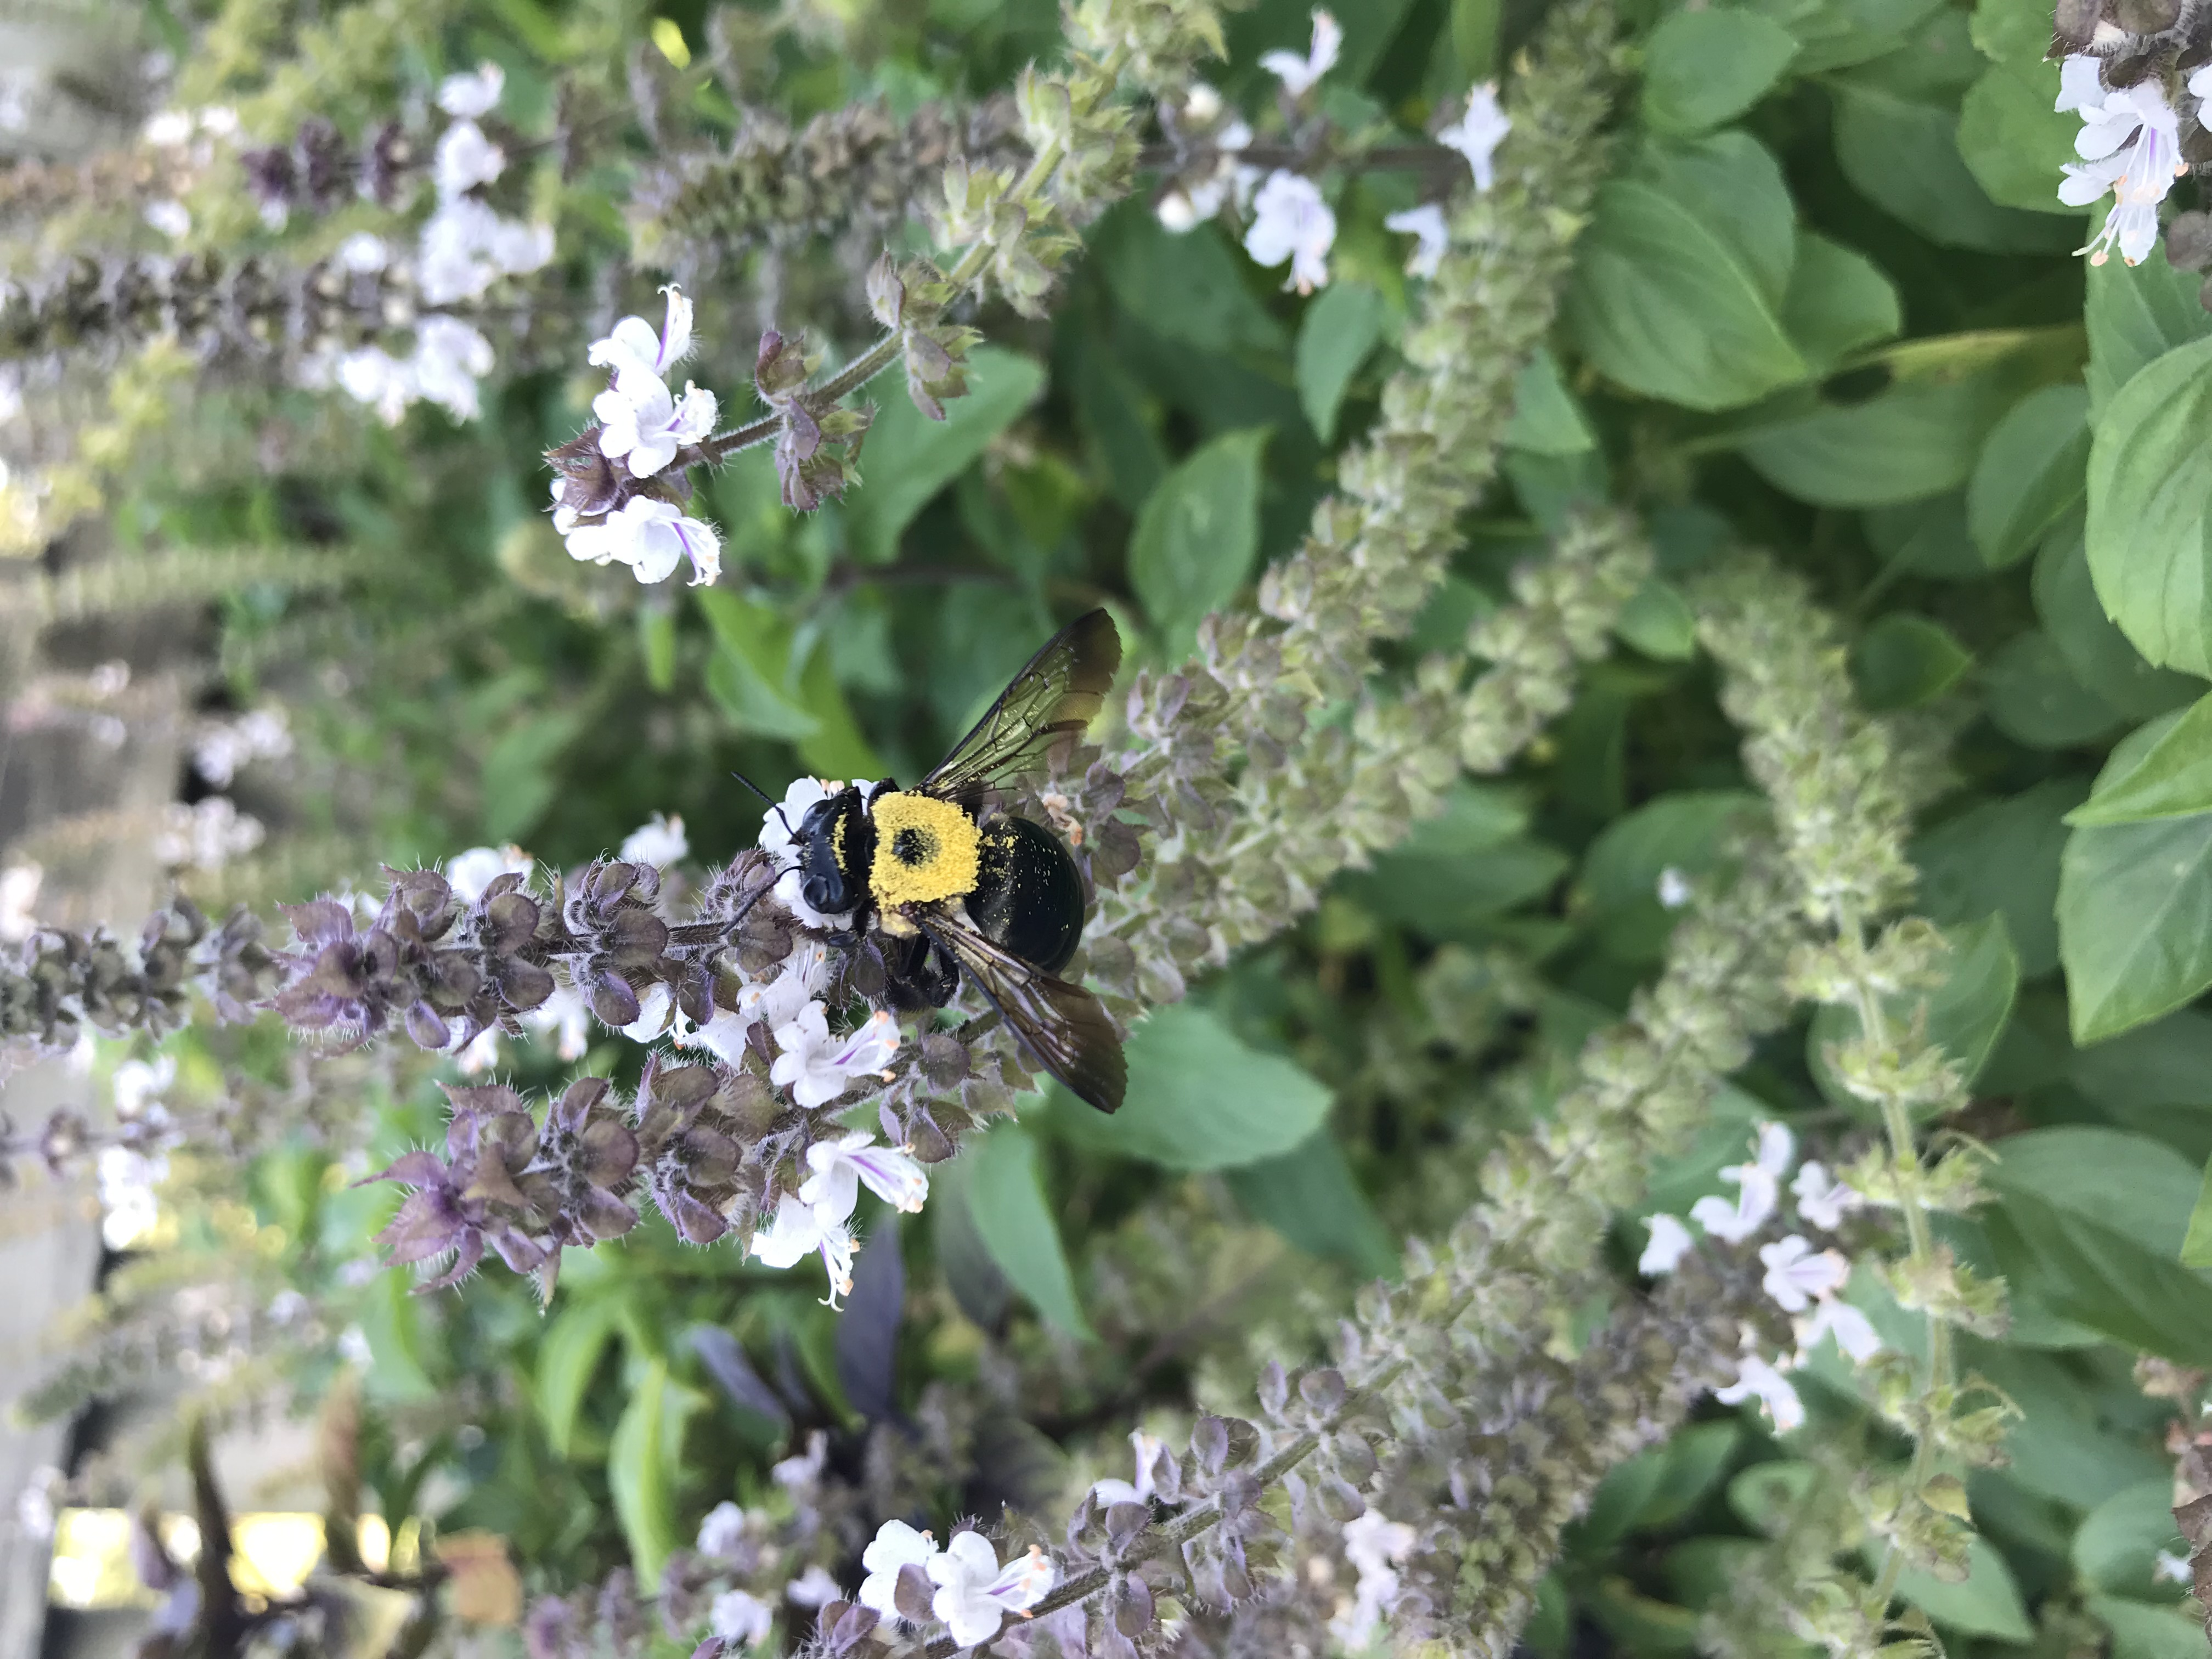 Bee on a vine.